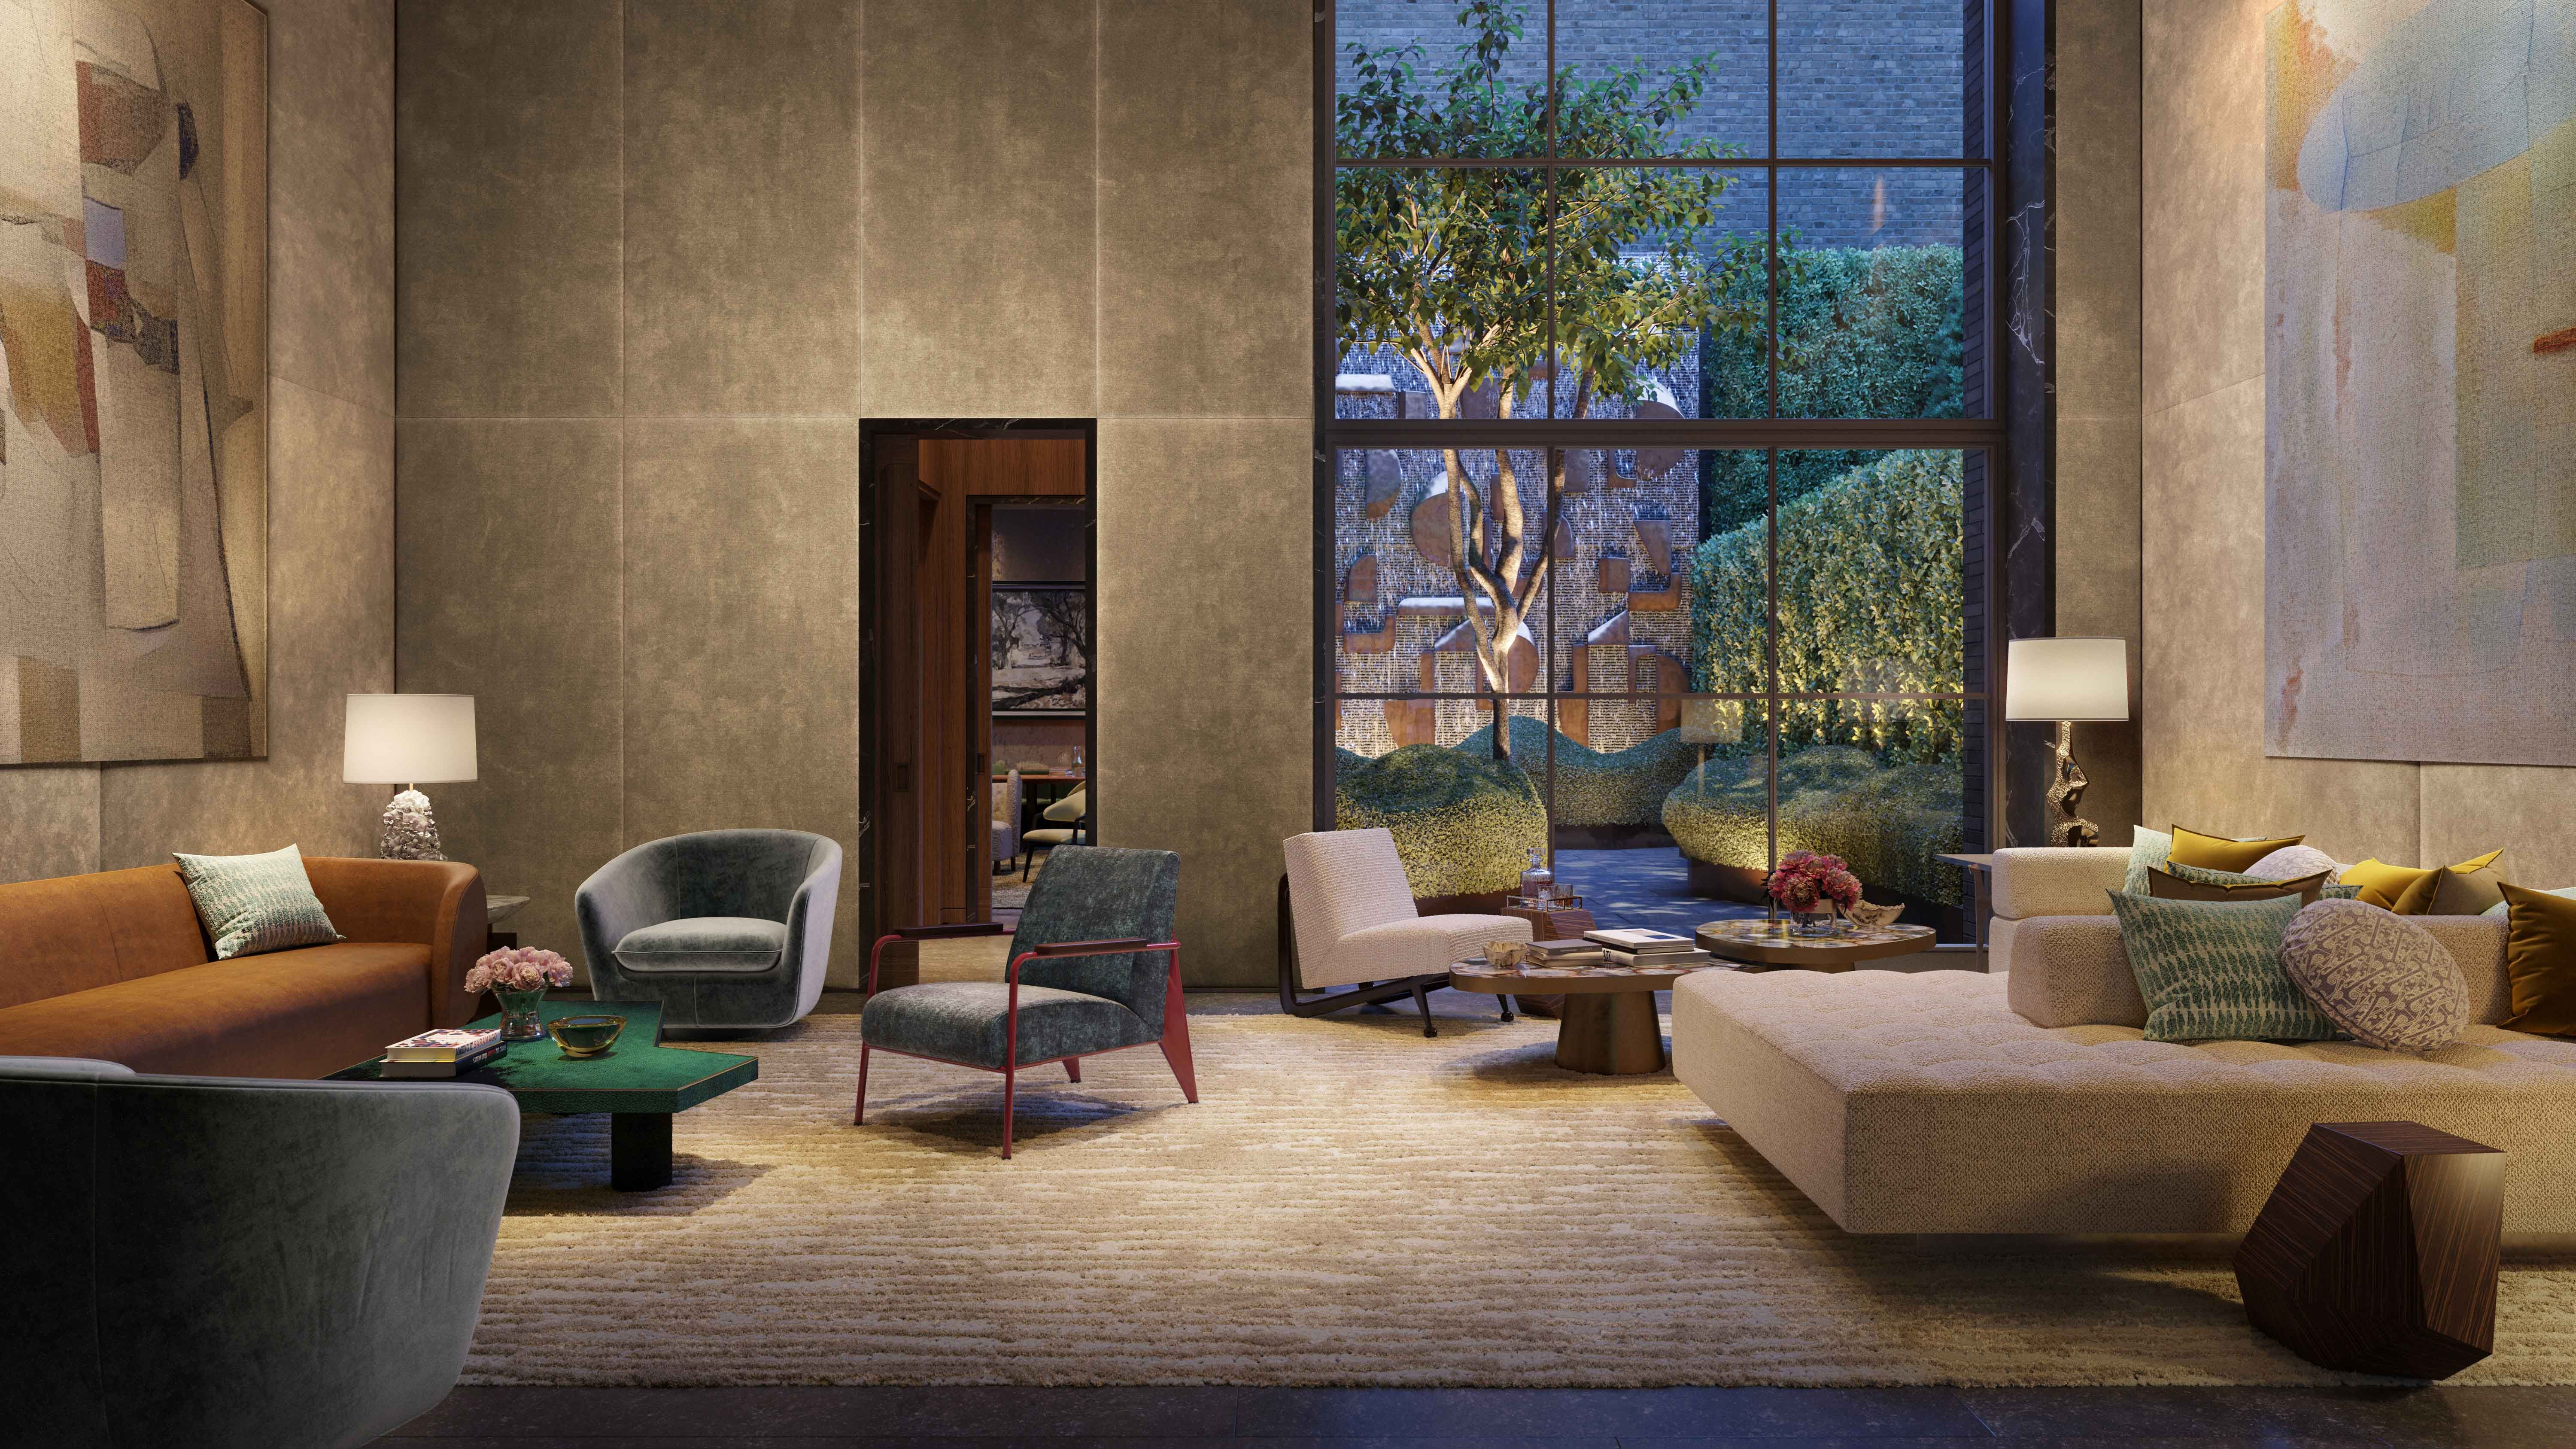 Lobby Lounge and Library with views of the Garden including a sculptural water wall by artist Mig Perkins